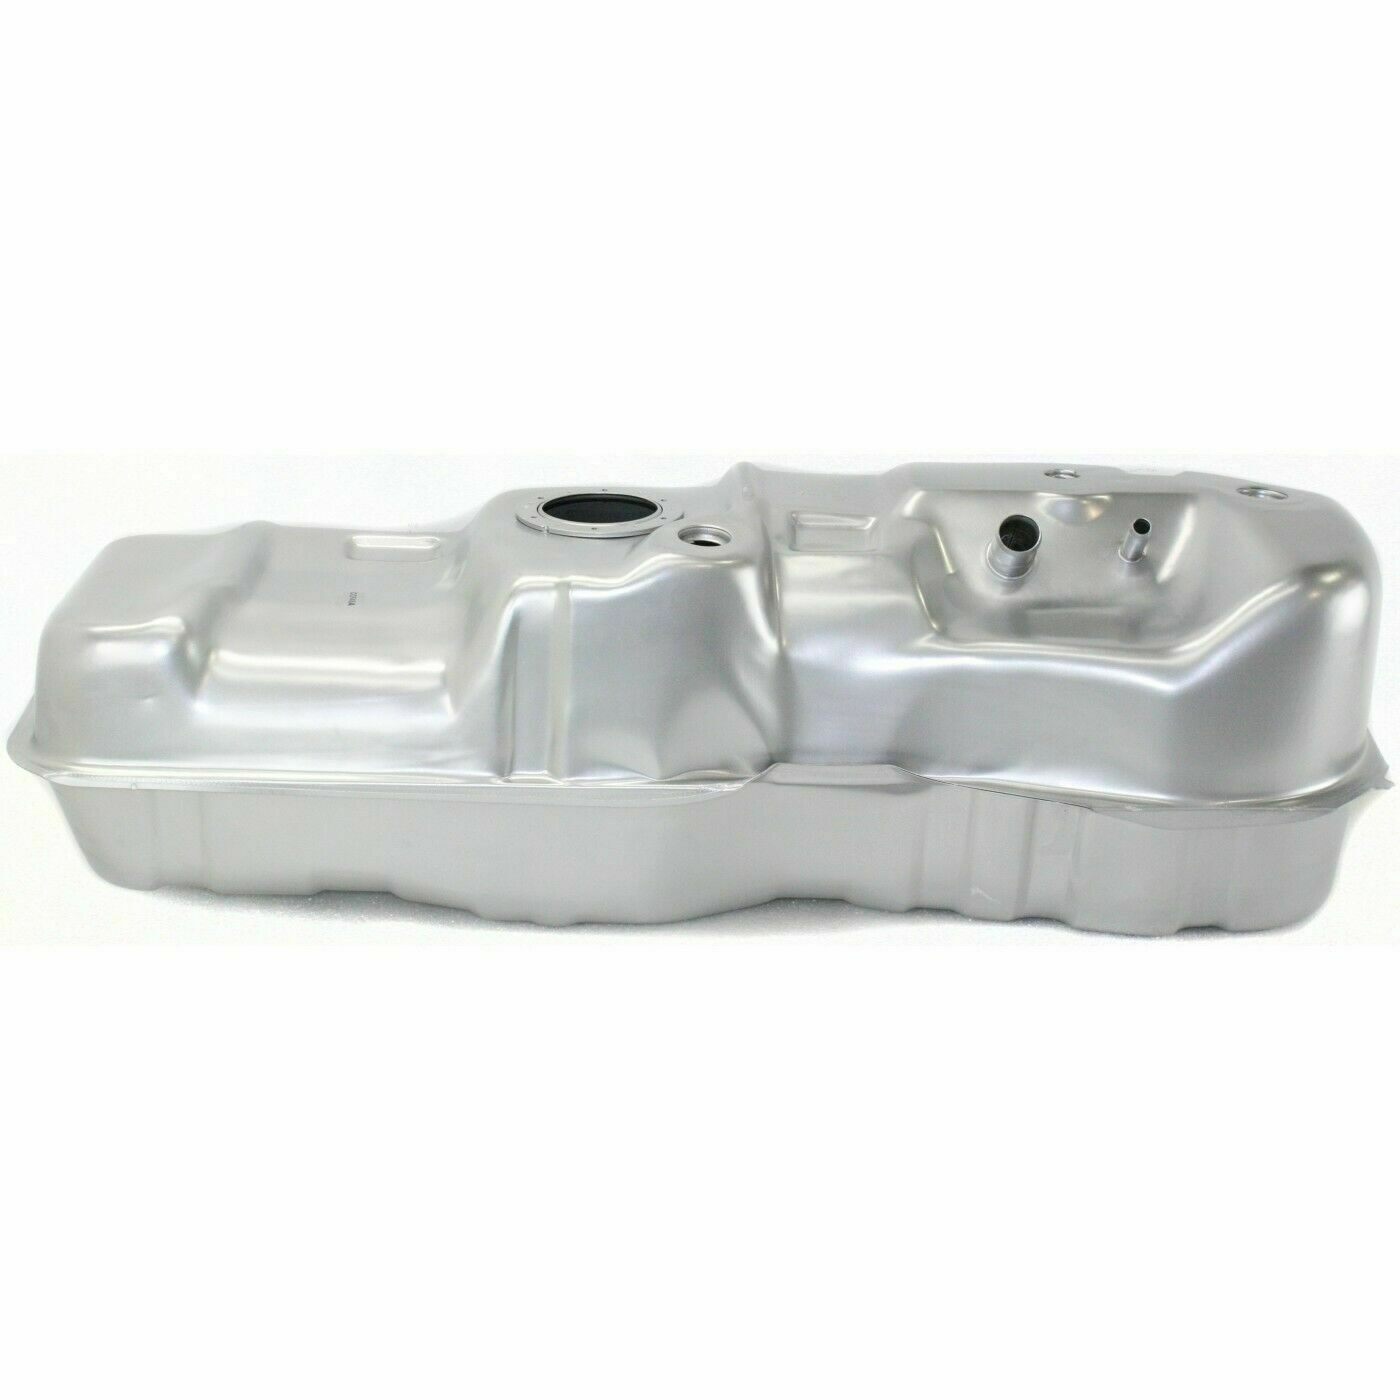 NEW 24.5 Gallon Fuel Gas Tank, Silver for 1997-1998 Ford F ...